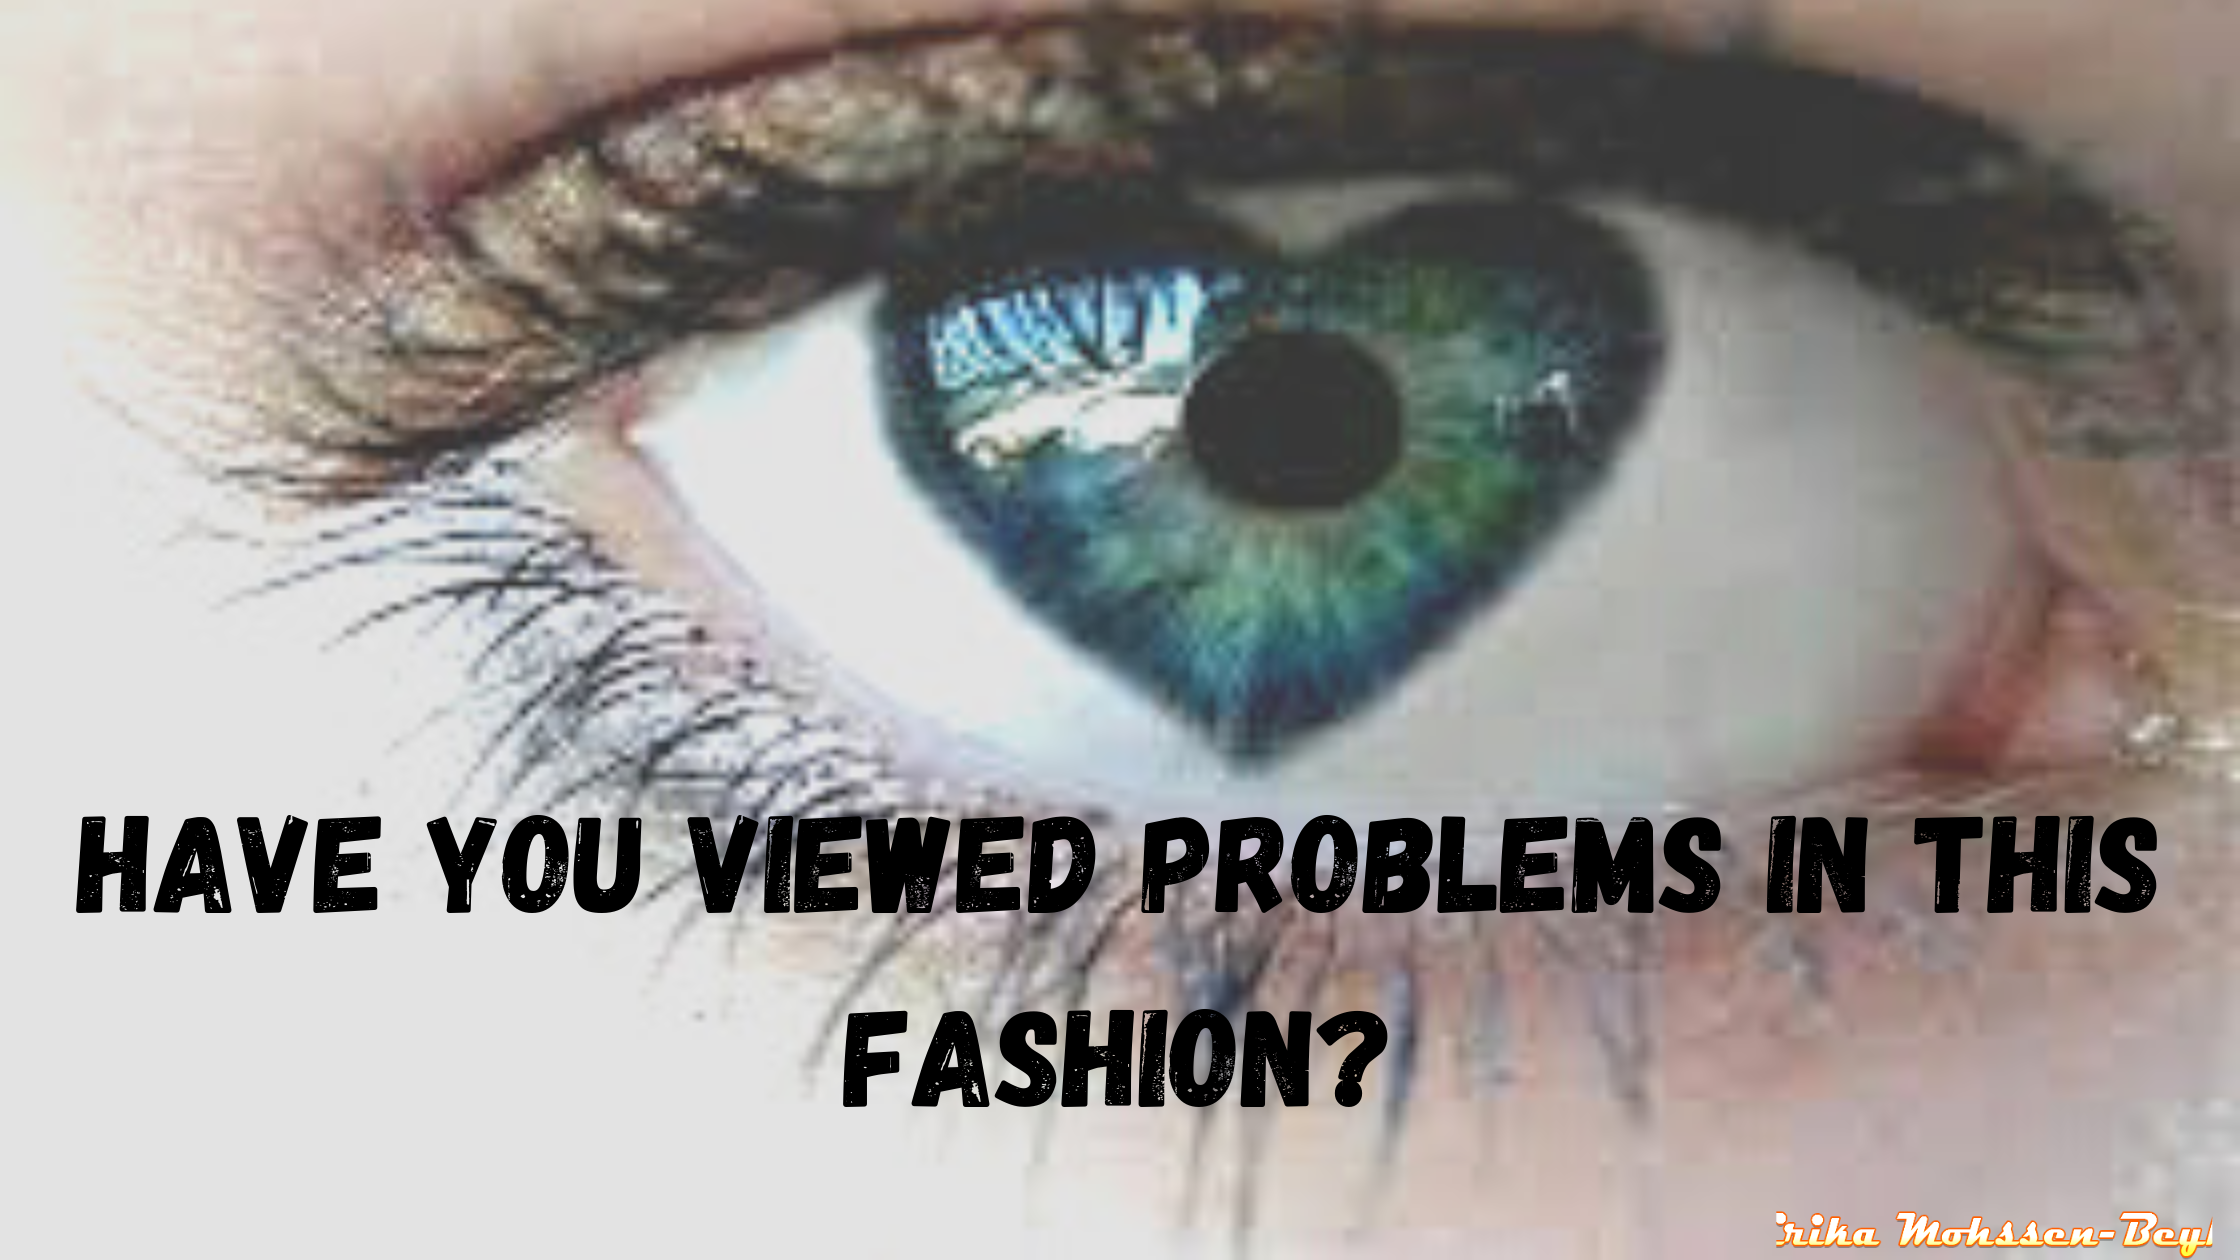 Have You Viewed Problems in this Fashion?